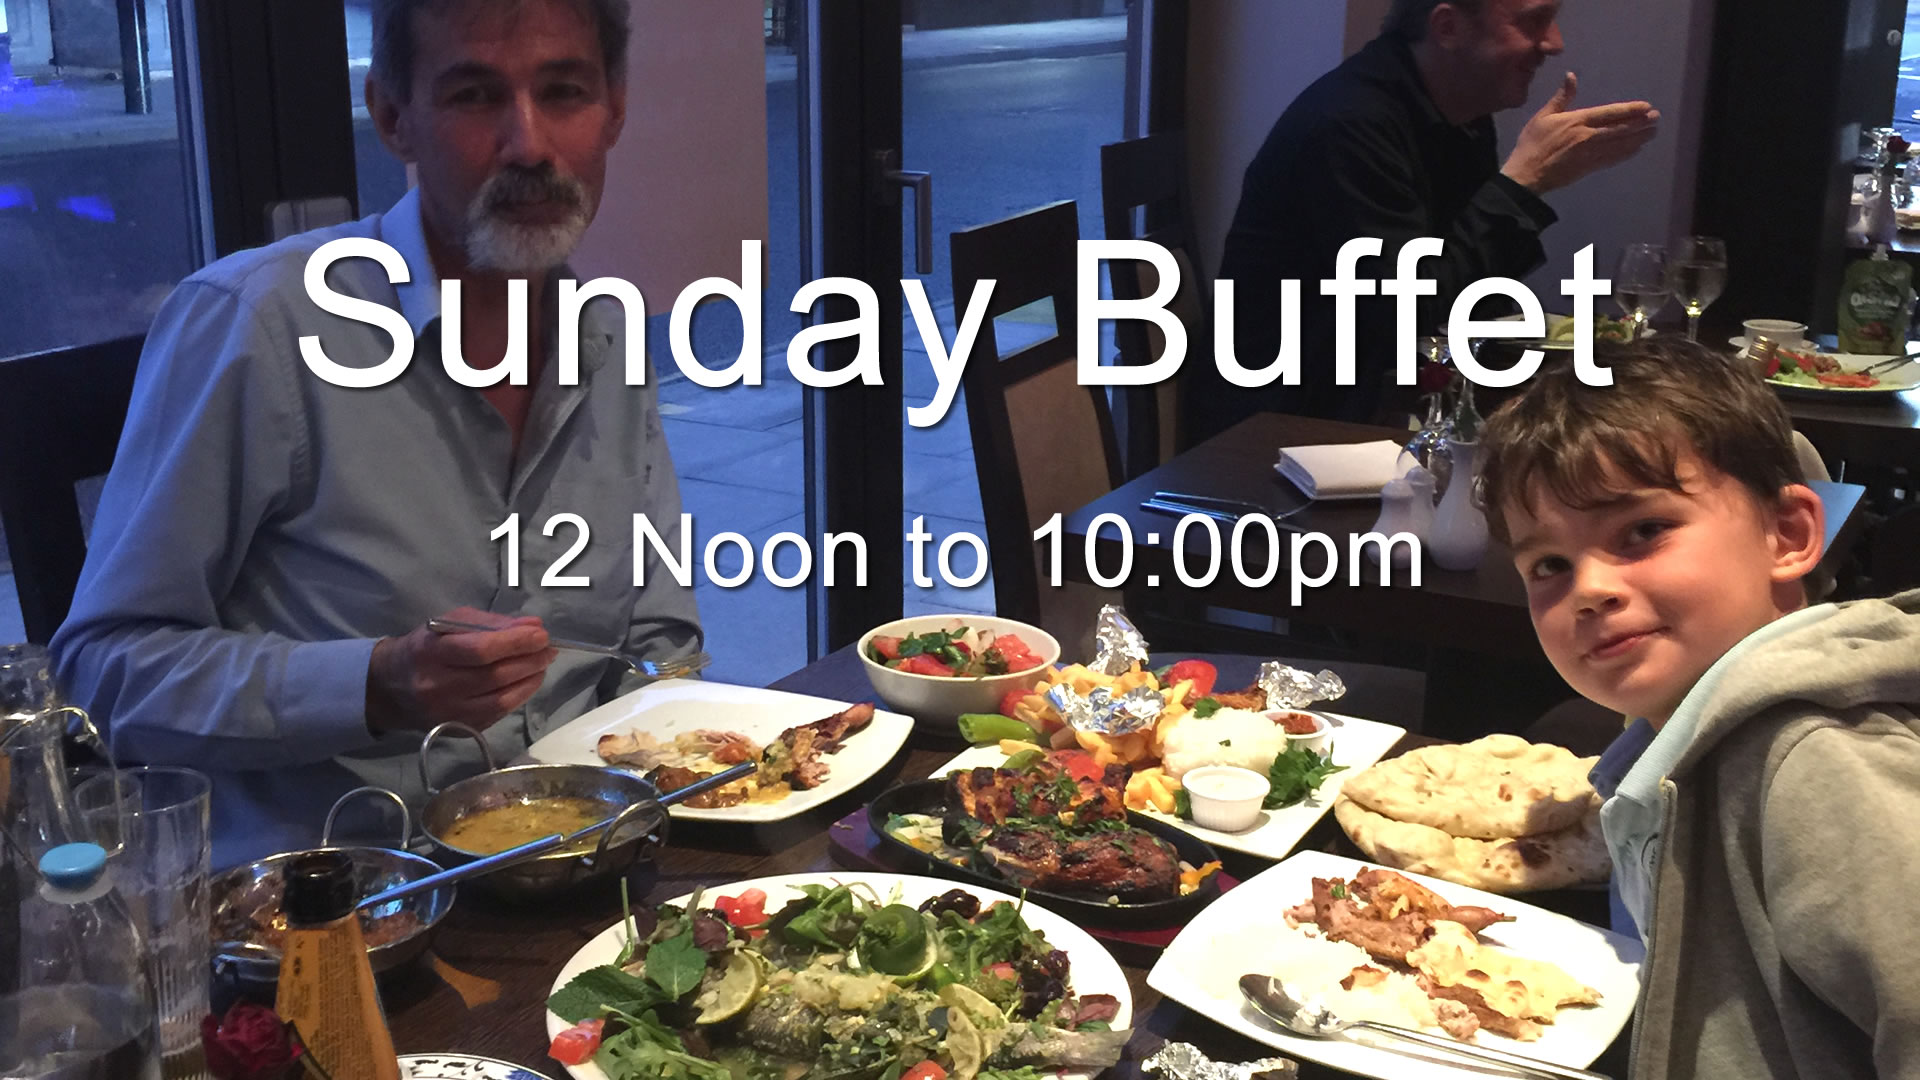 Sunday Buffet